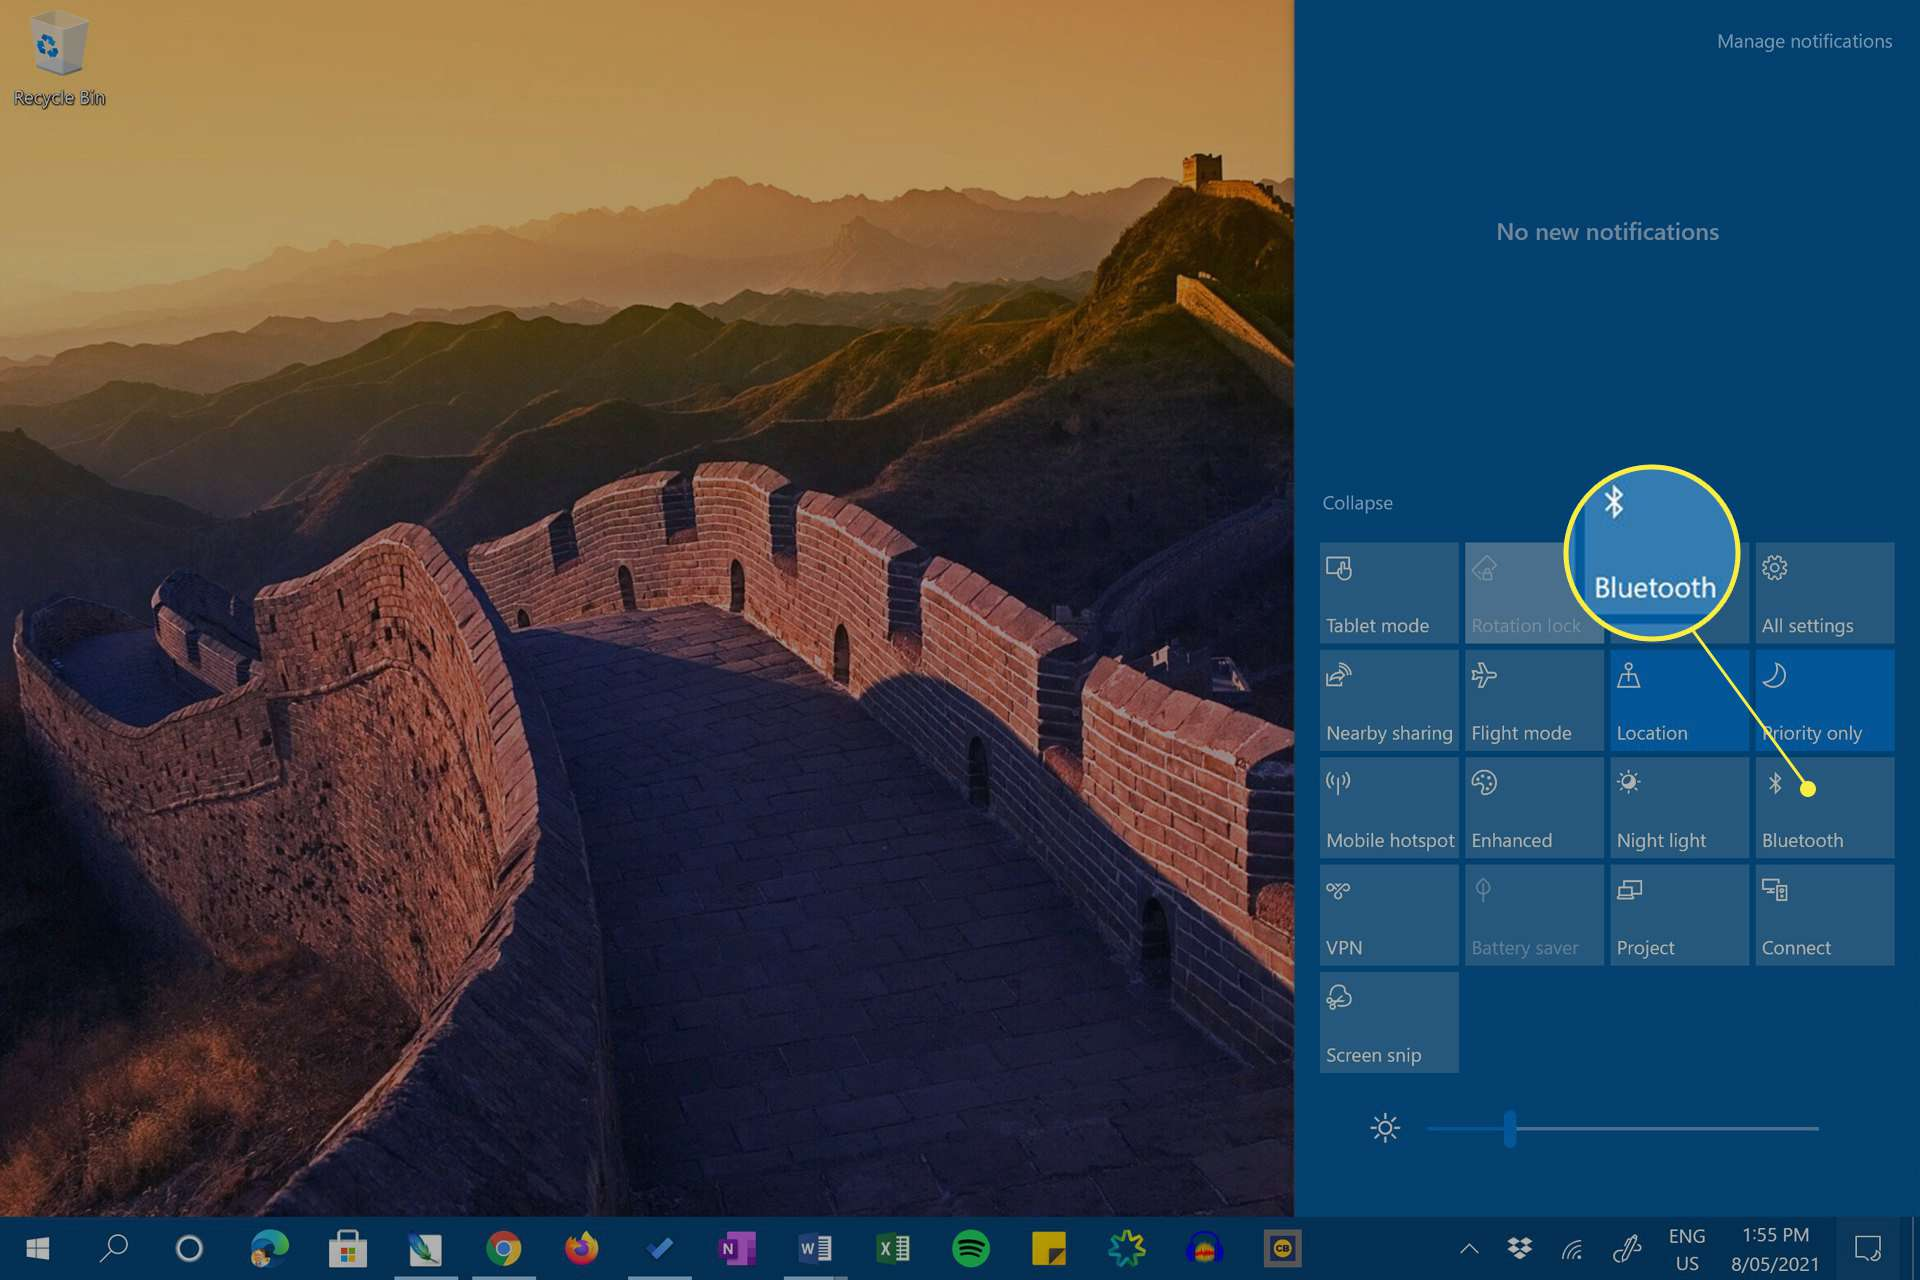 Windows 10 Action Center with Bluetooth highlighted